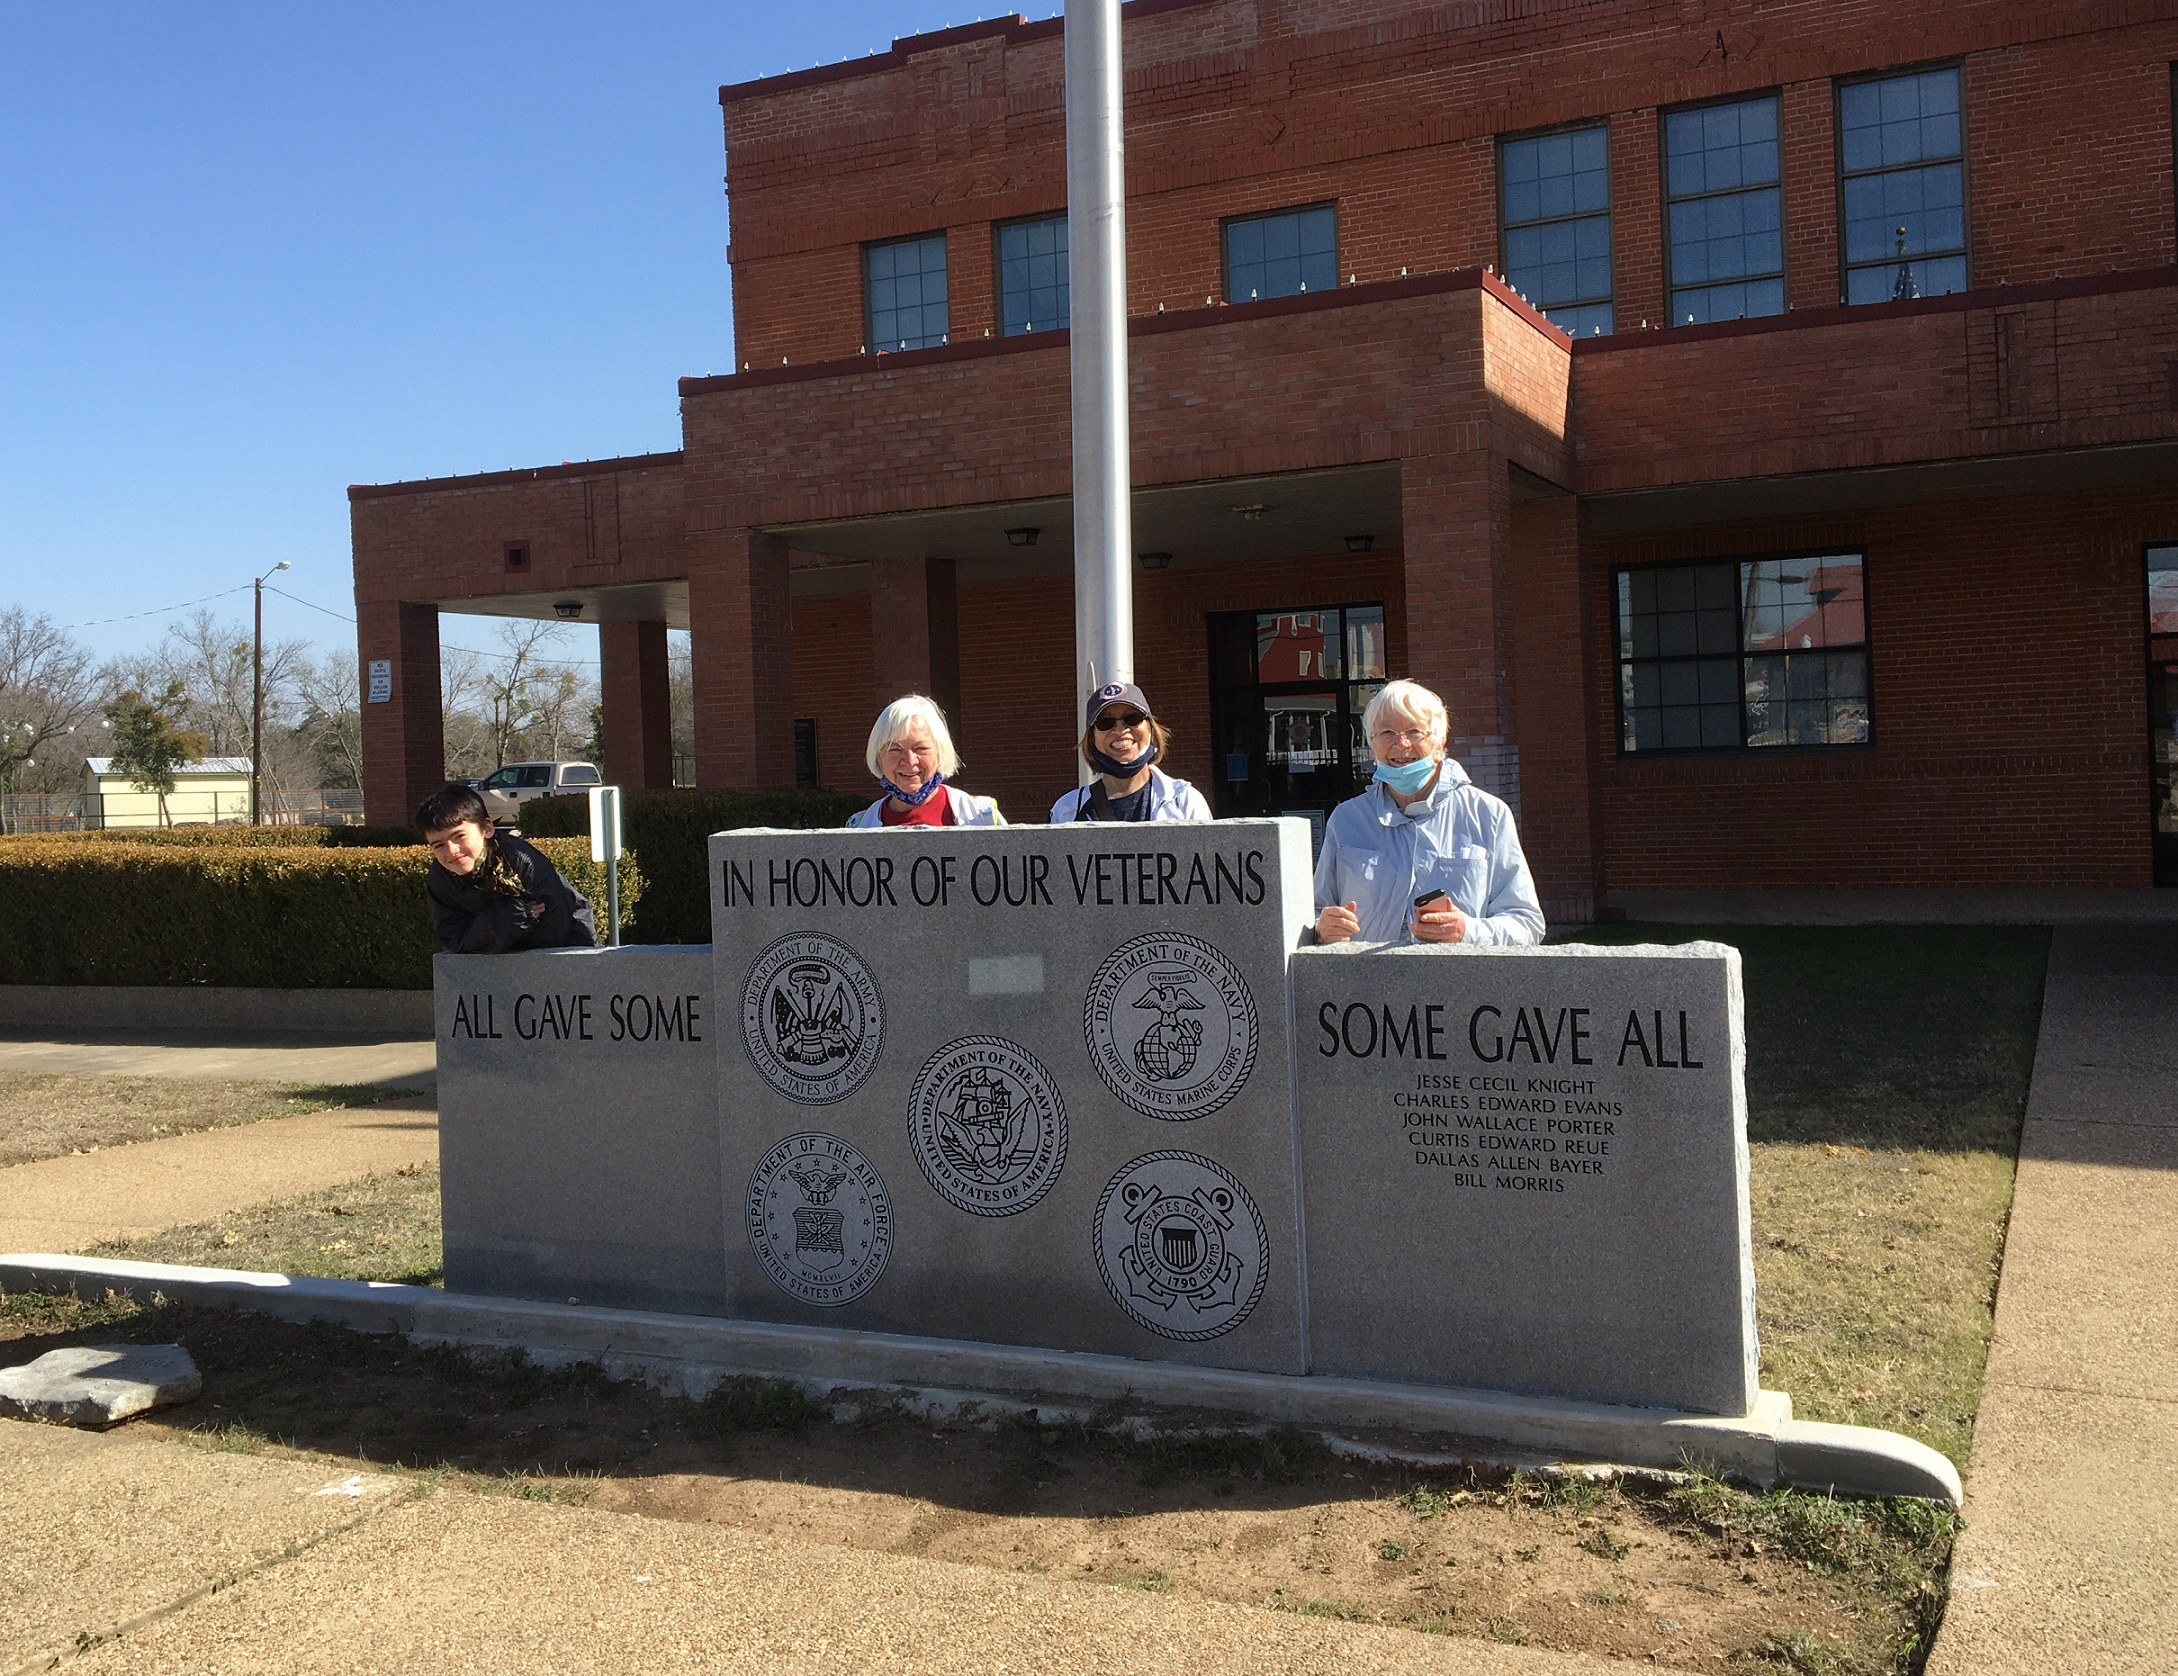 Photos from Salado YRE Group Walk on Jan 16th